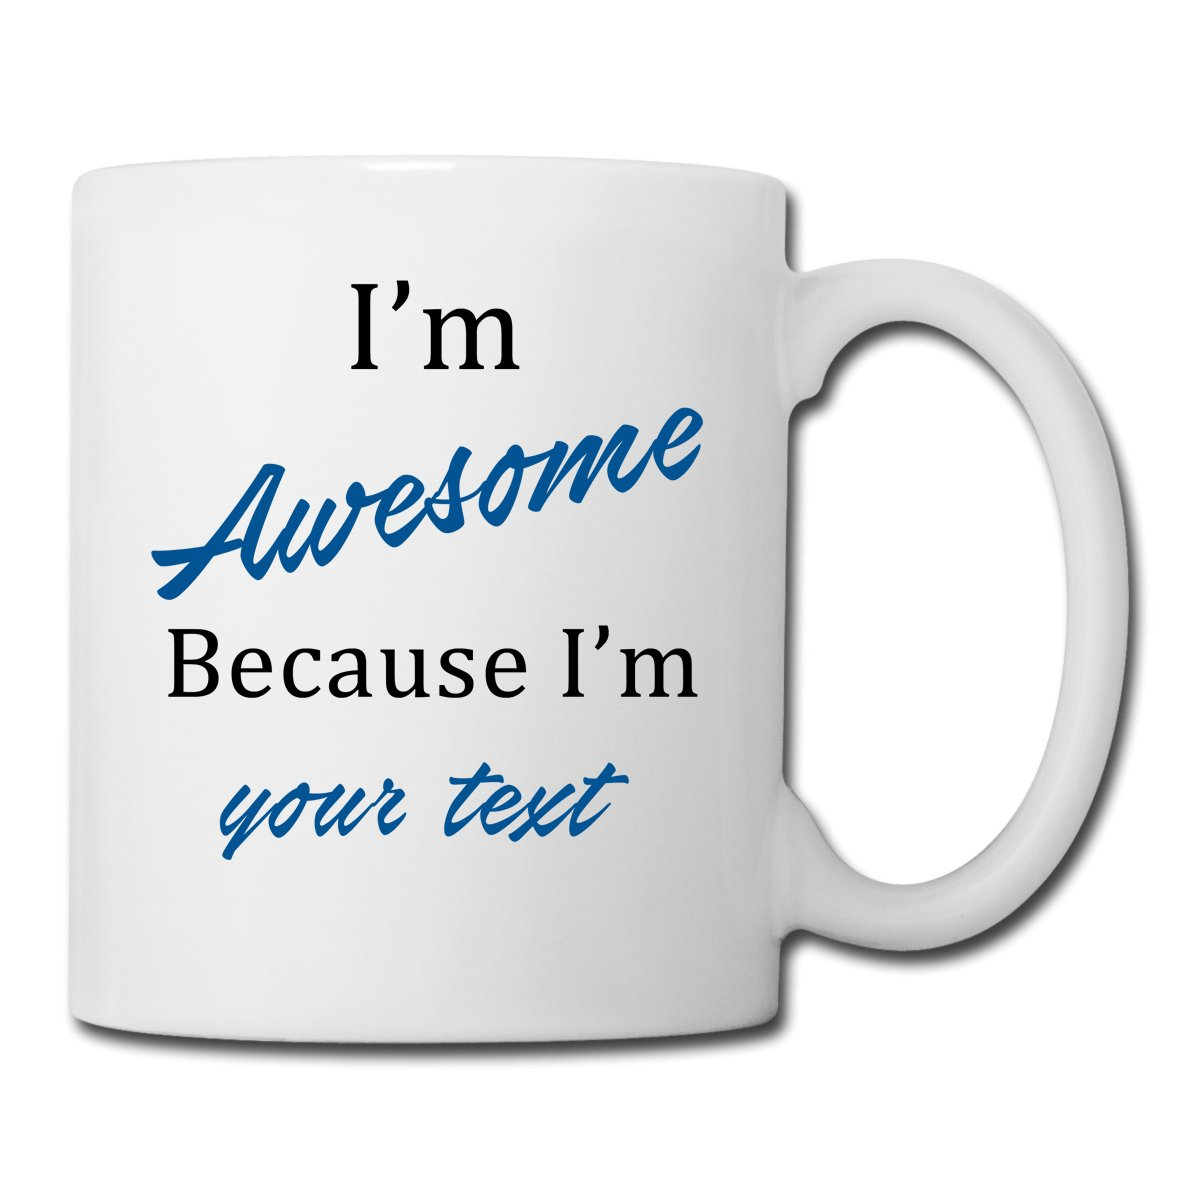 2c150c41119 Amazon.com  Personalized With Name And Text Funny Quotes Inspirational  Sayings - I m Awesome Because I m...- Custom Gift Coffee Mug Tea Cup Ceramic  White 11 ...